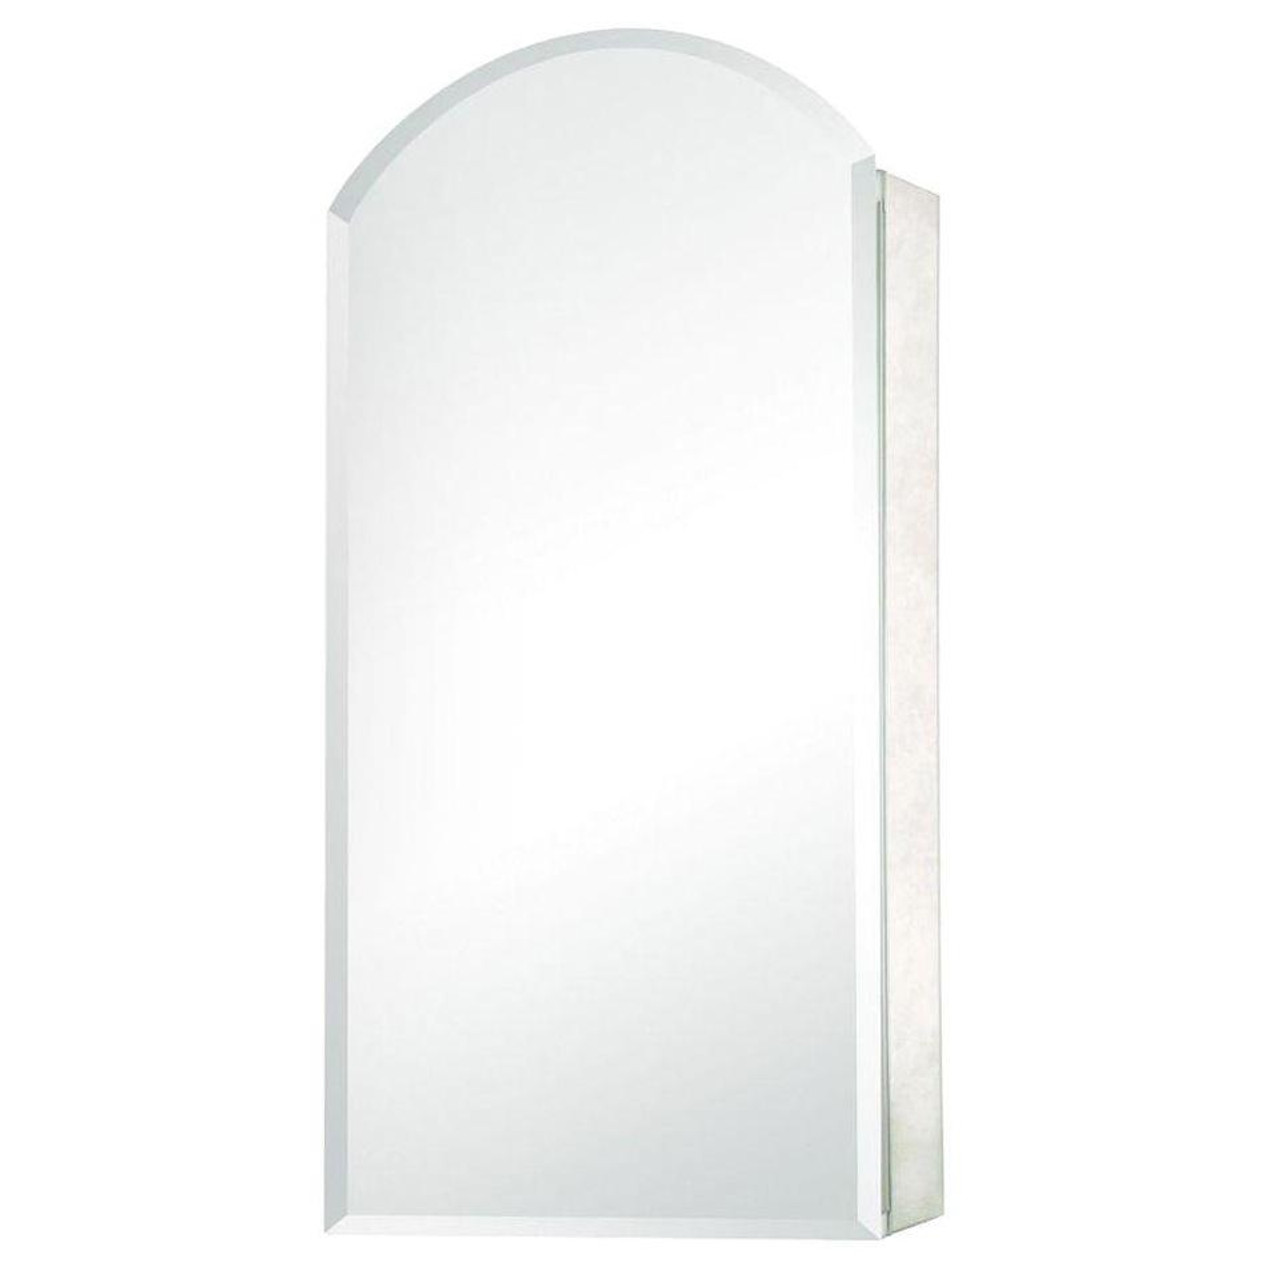 15 in. x 30 in. Recessed or Surface Mount Mirrored Medicine Cabinet with Frameless Mirror in Silver (PE-511274)